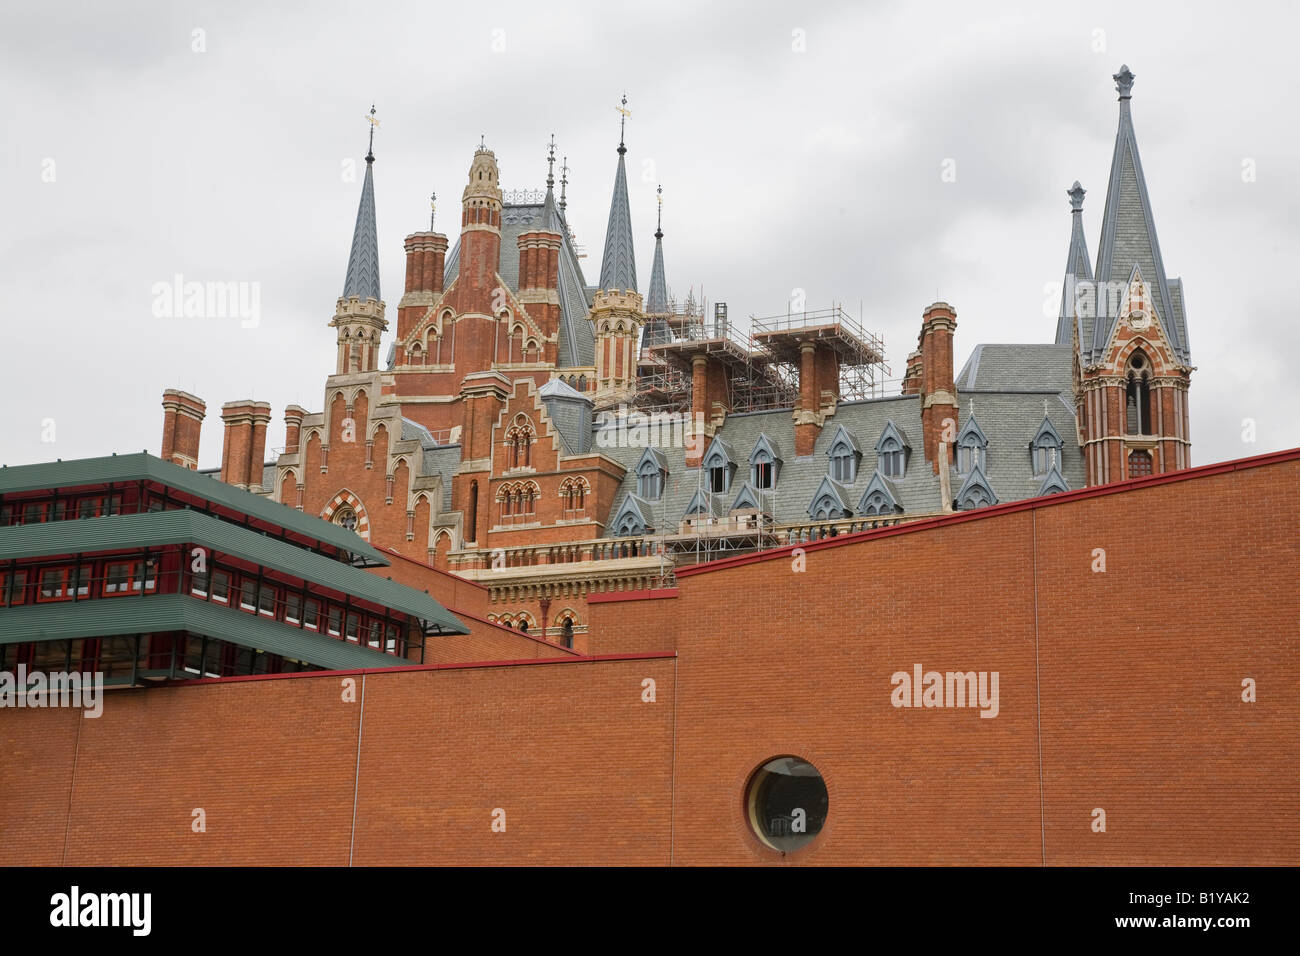 St Pancras Station from the British Library London England - Stock Image